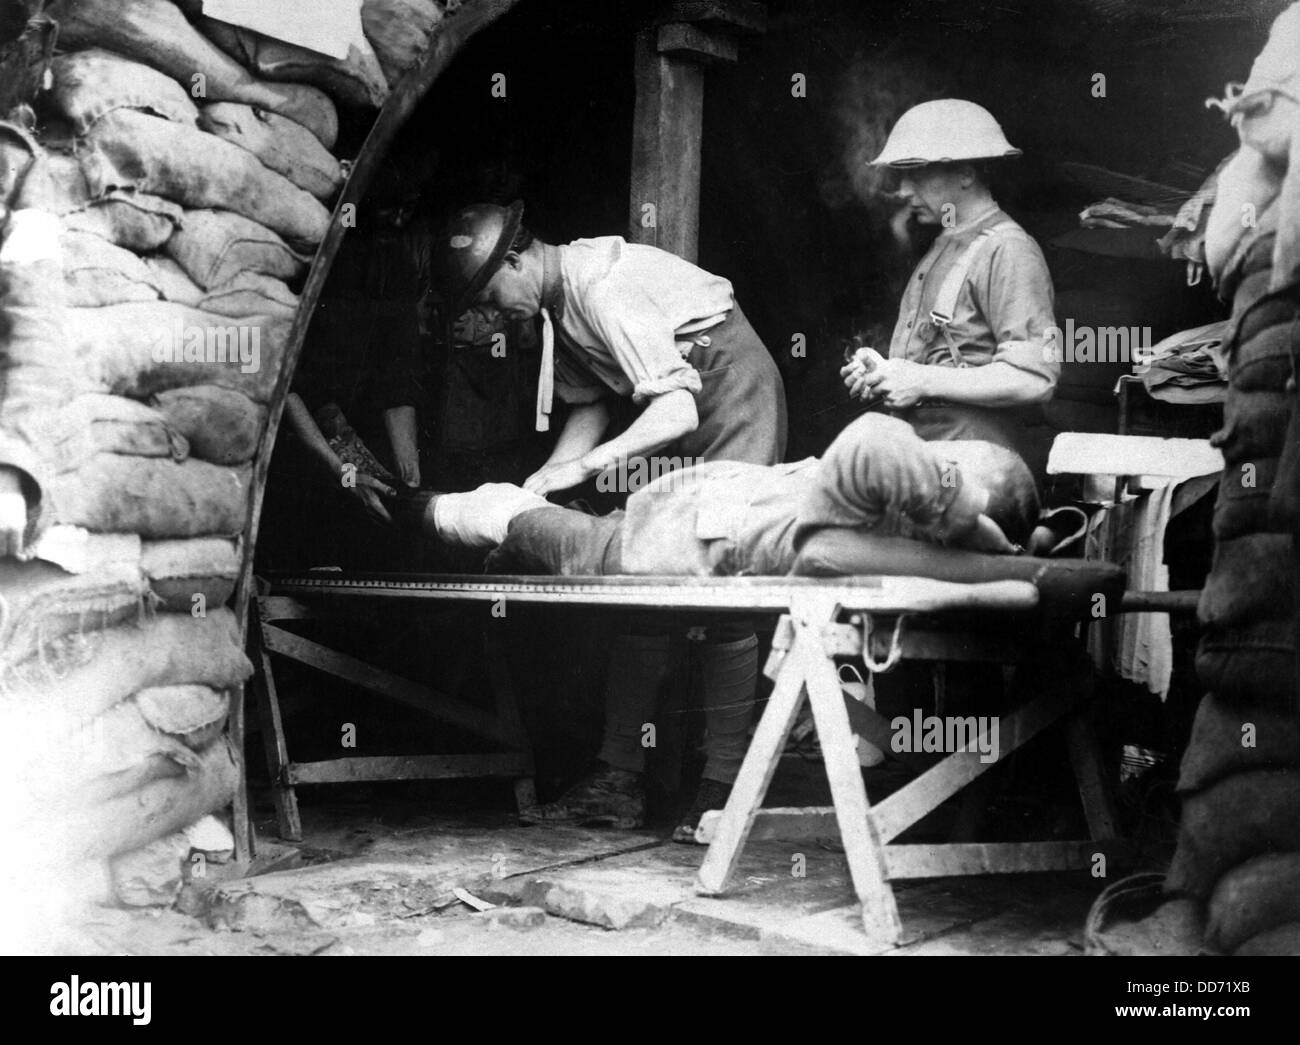 Scottish territorials being examined in a dressing station during Battle of Menin Road in Belgium. World War I, - Stock Image